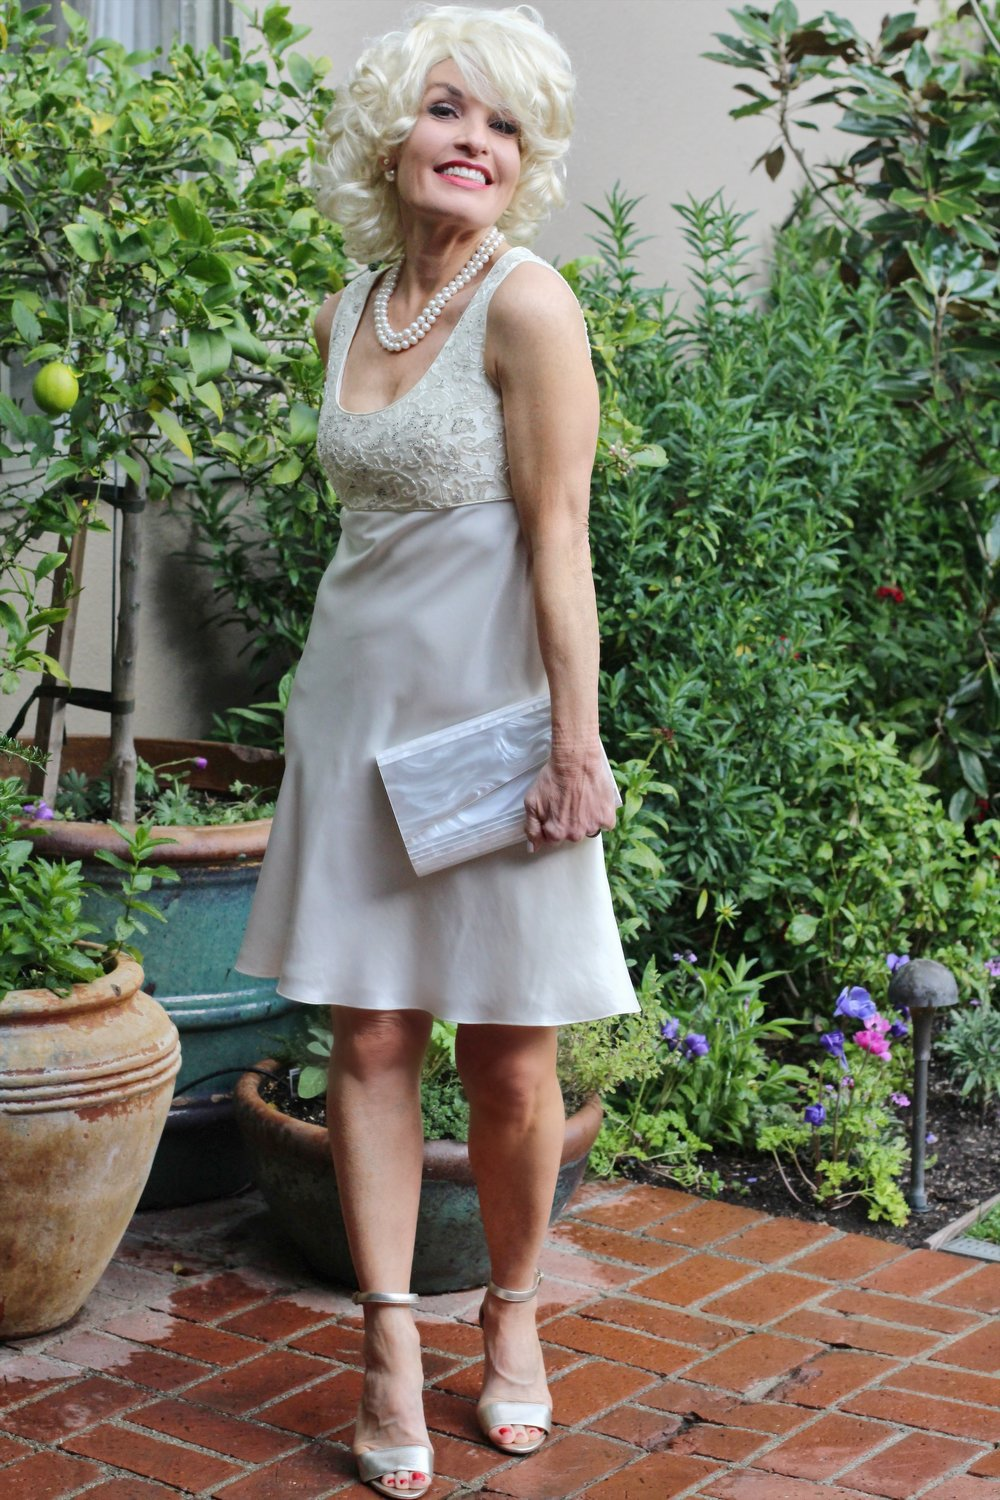 Vintage Caché dress,    similar here        and    here   . Manolo Blahnik heels    similar here     ,   vintage clutch.